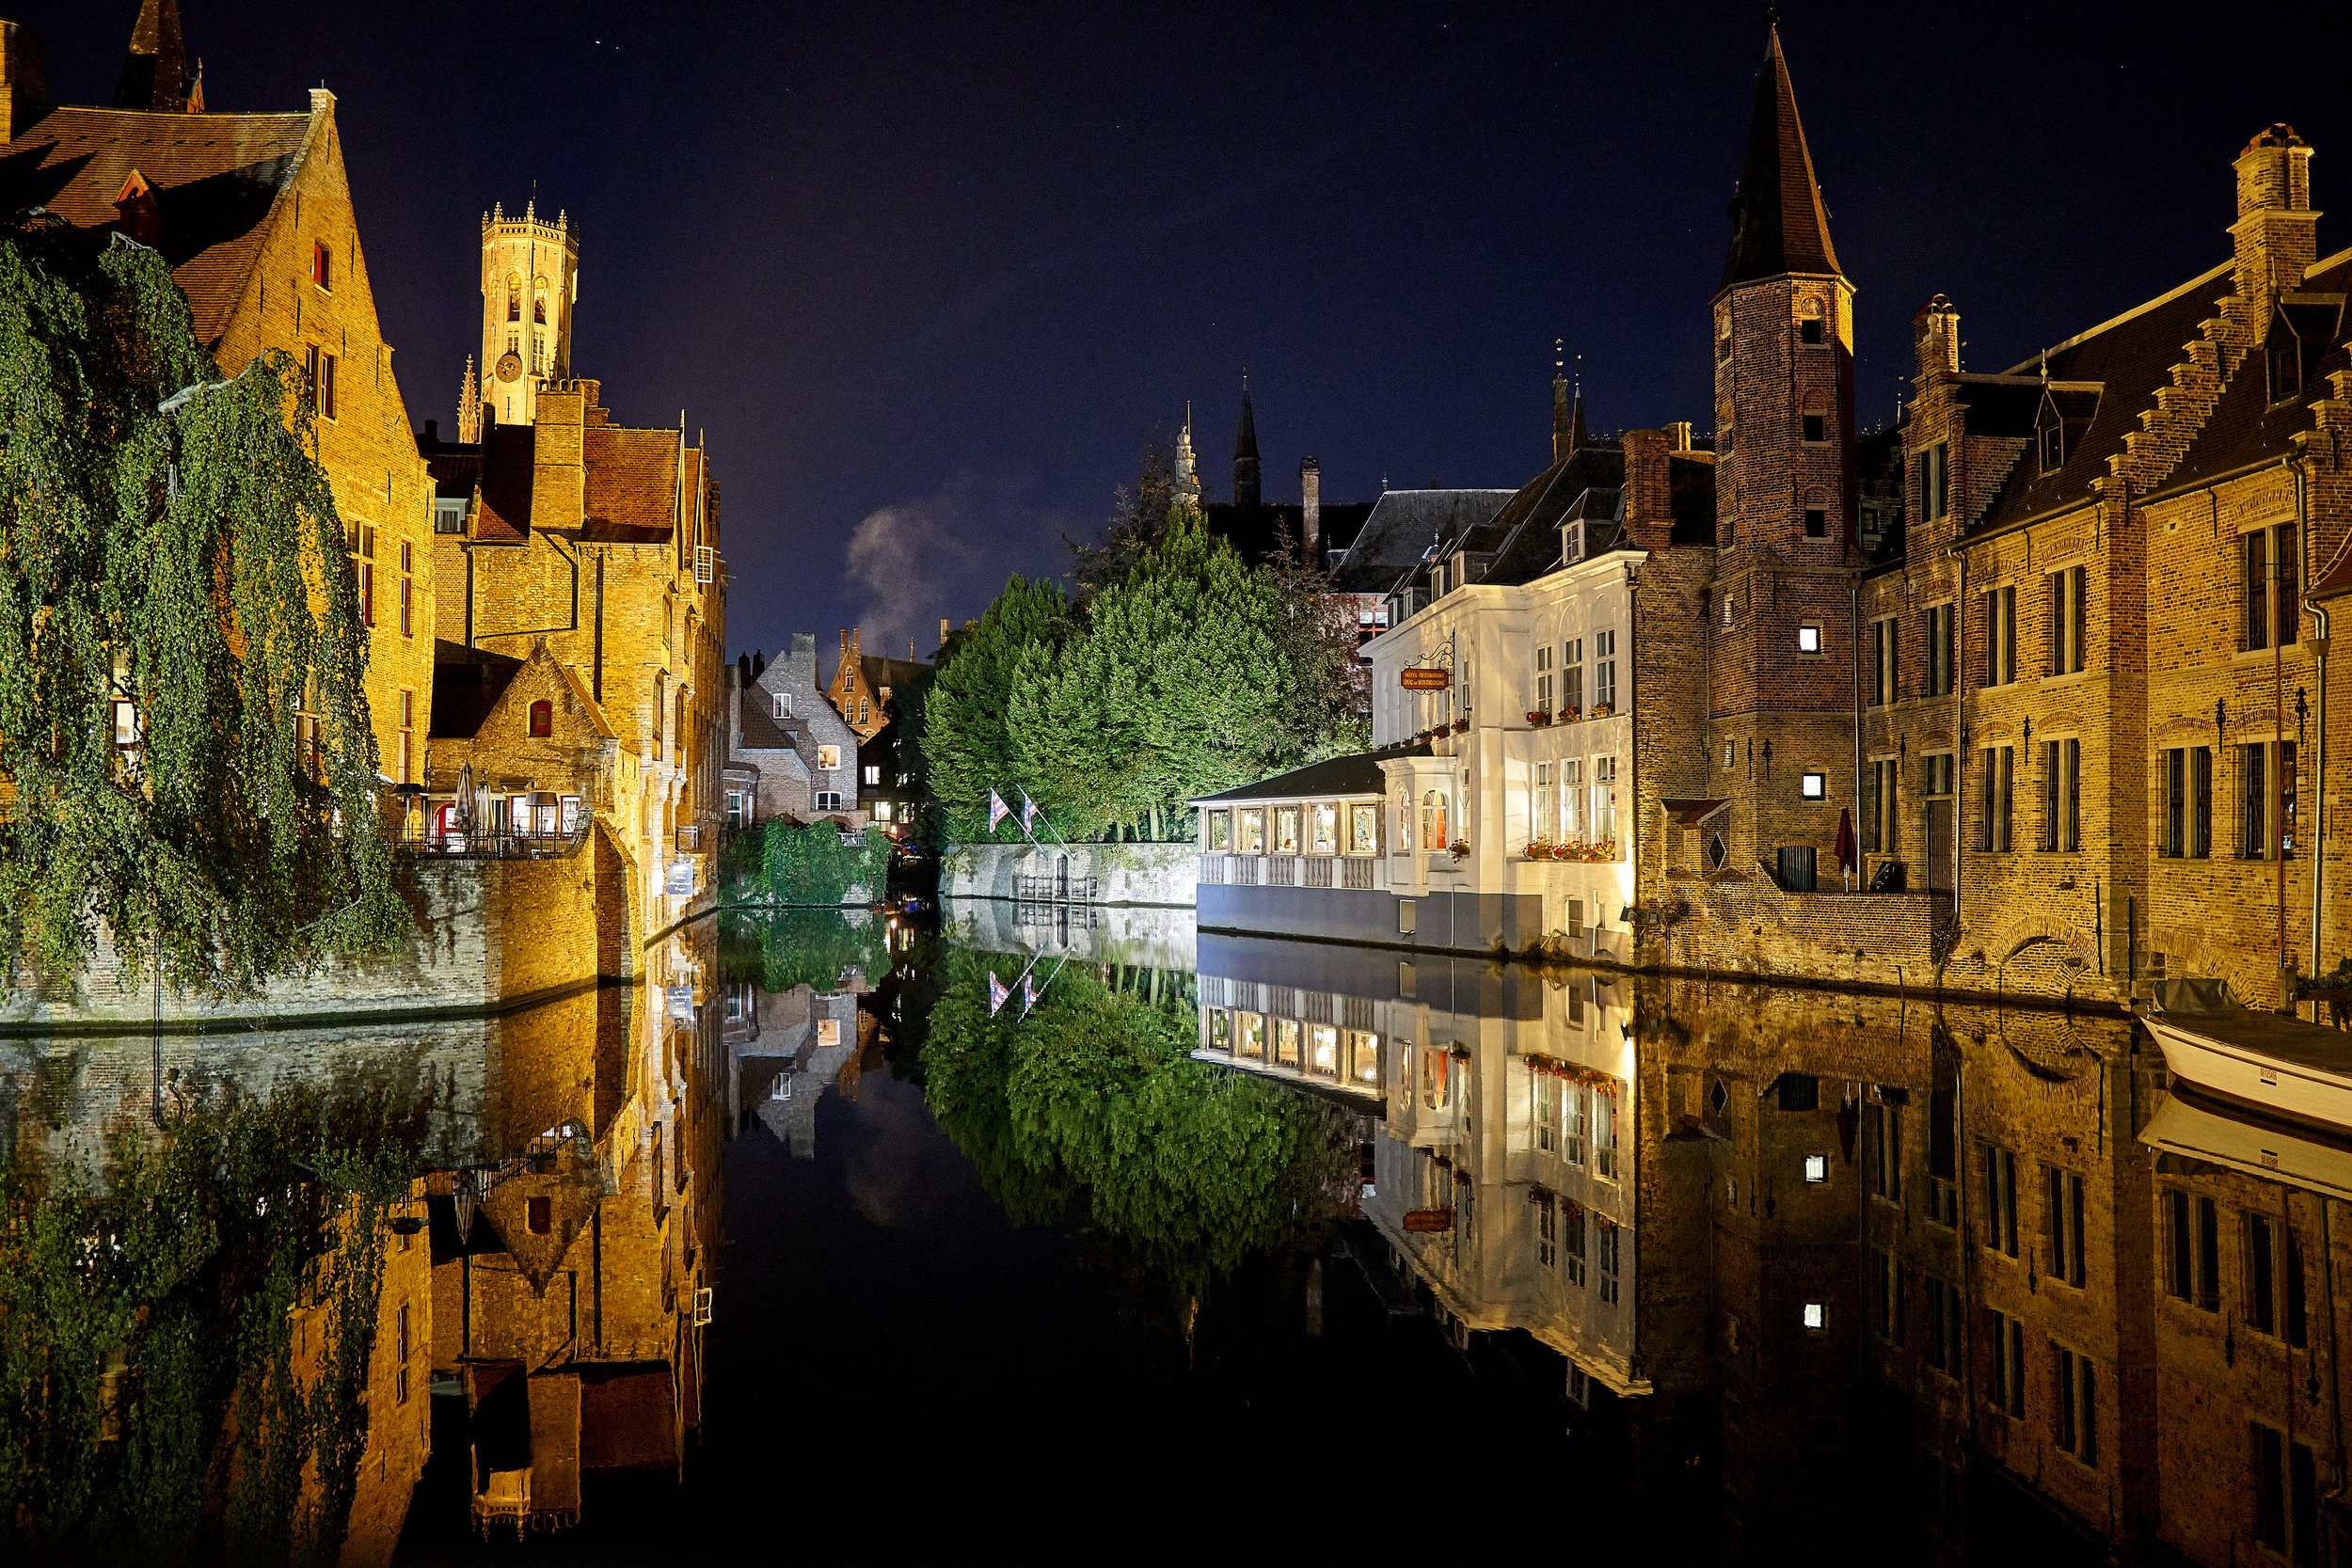 canal at night 2.jpg